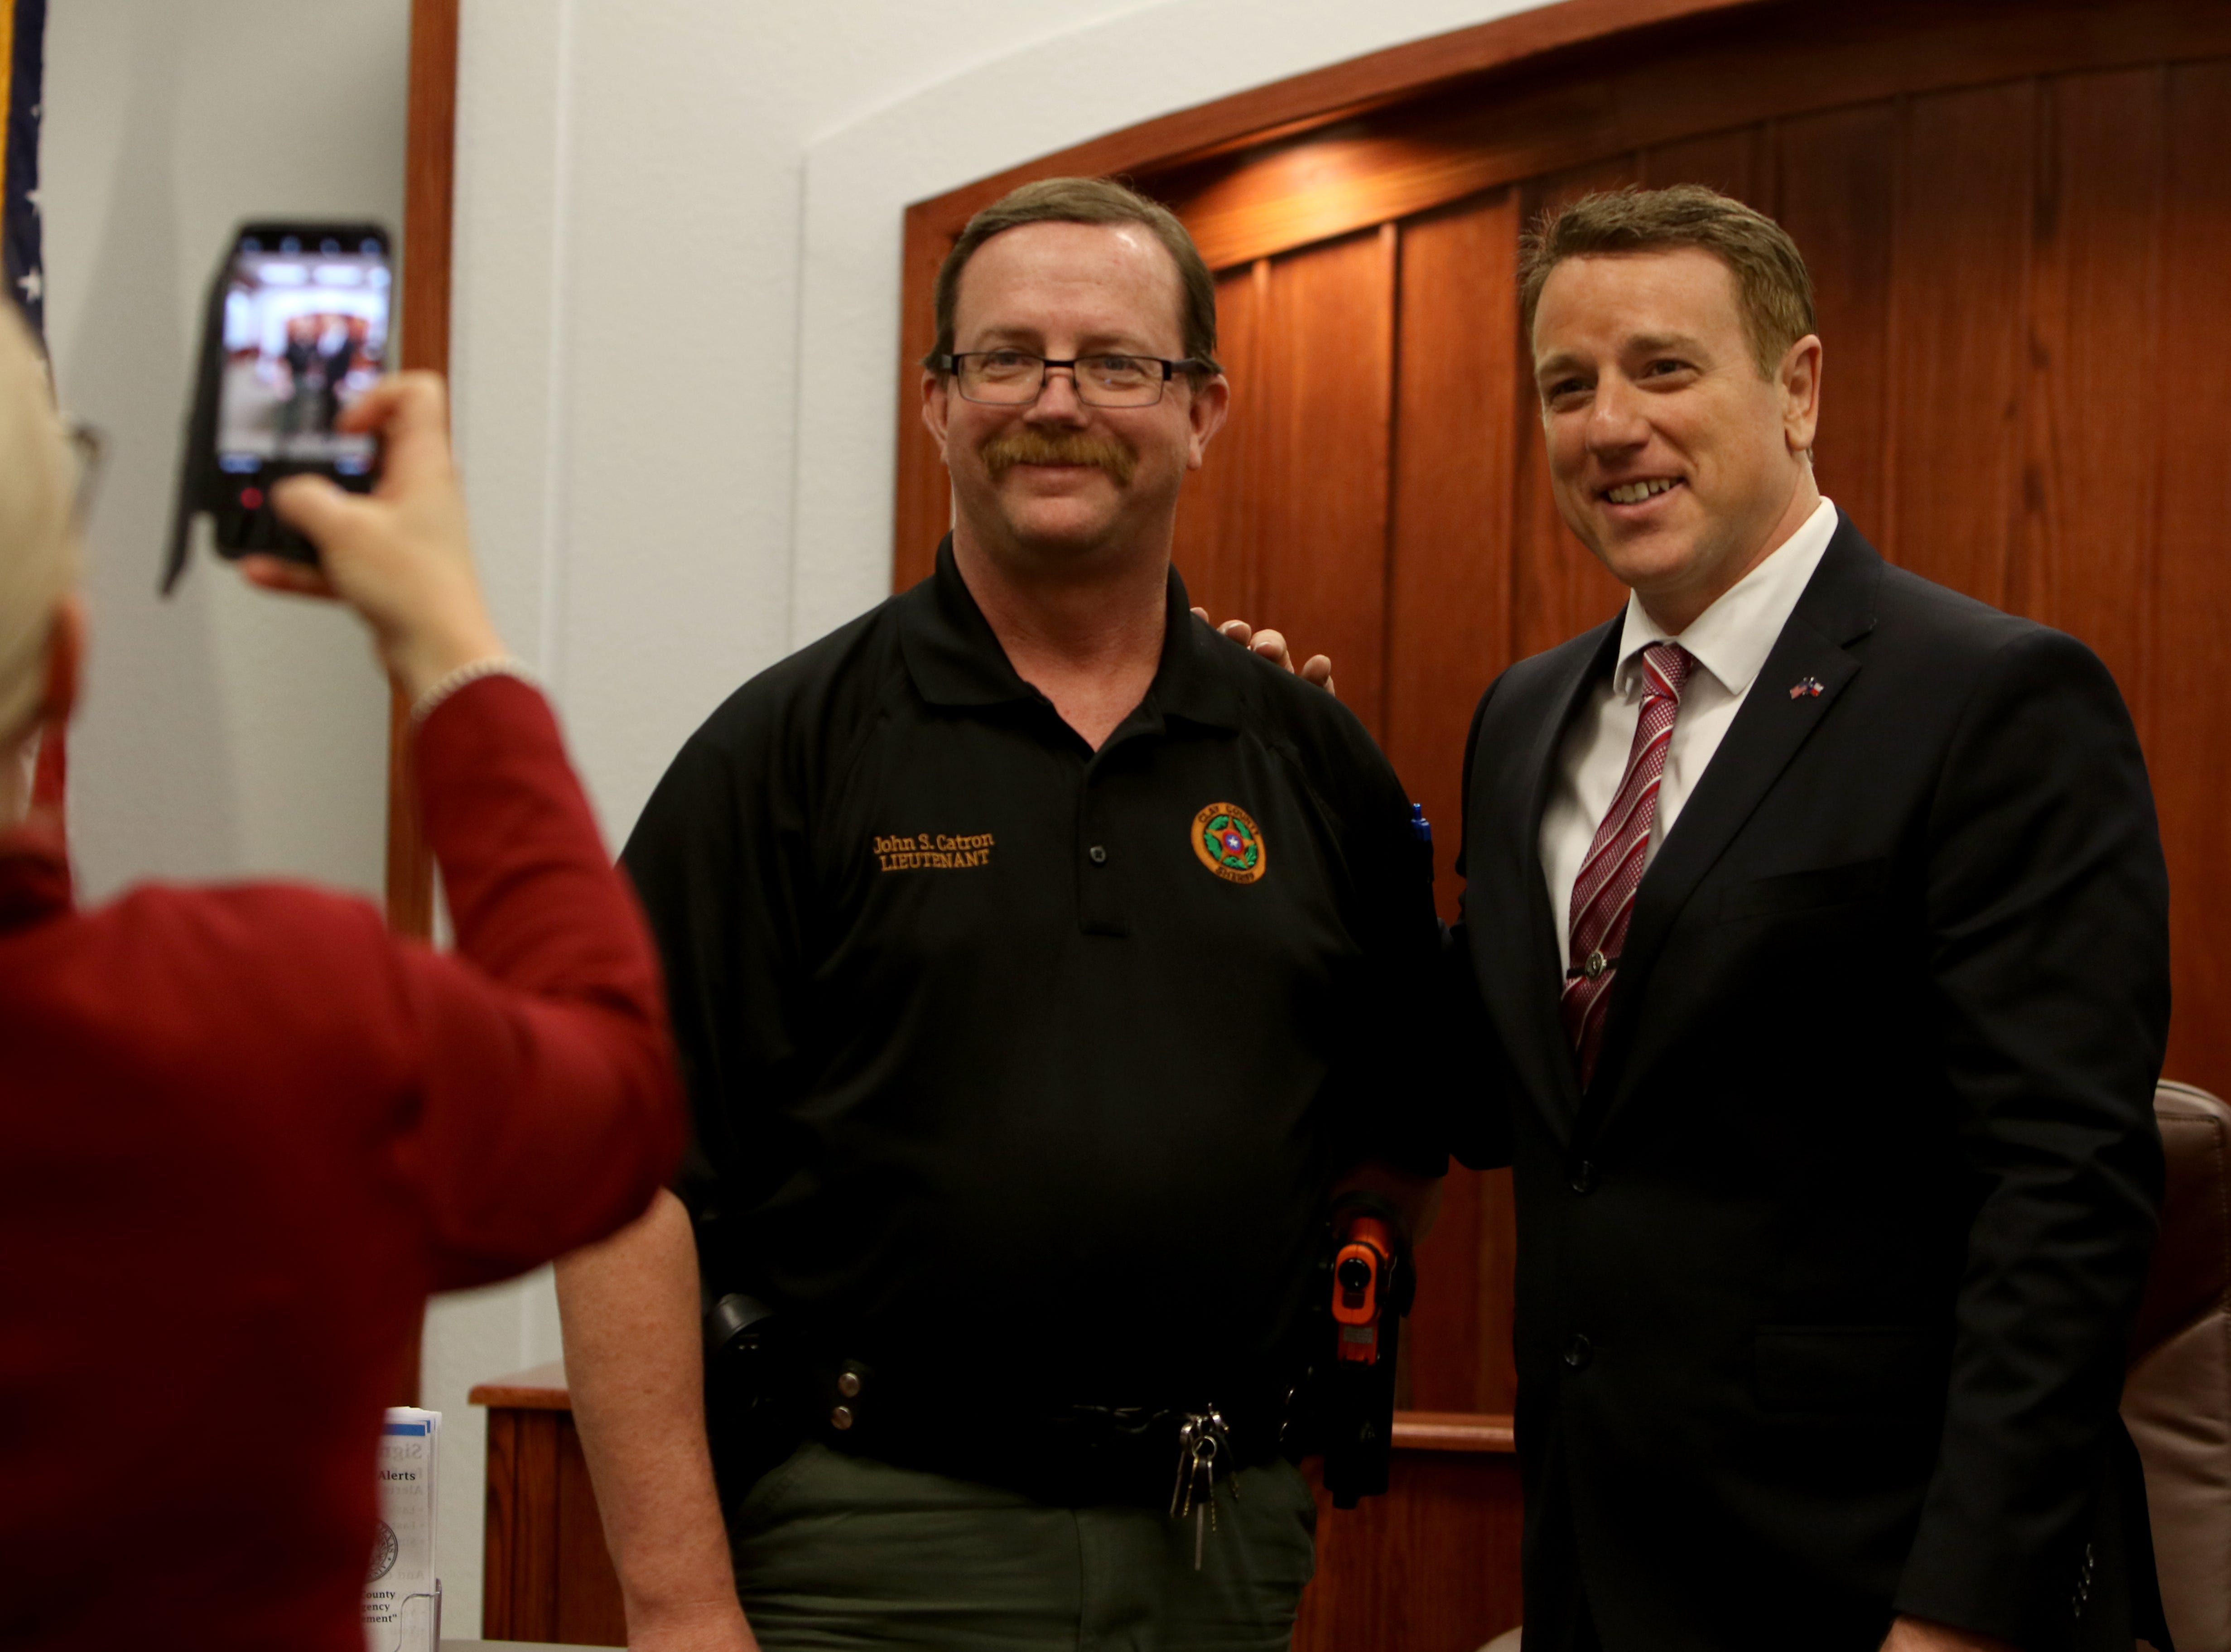 Texas Senator Pat Fallon takes a photo with John Catron after Fallon's town hall Saturday, Feb. 16, 2019, at the Clay County Courthouse Annex in Henrietta.